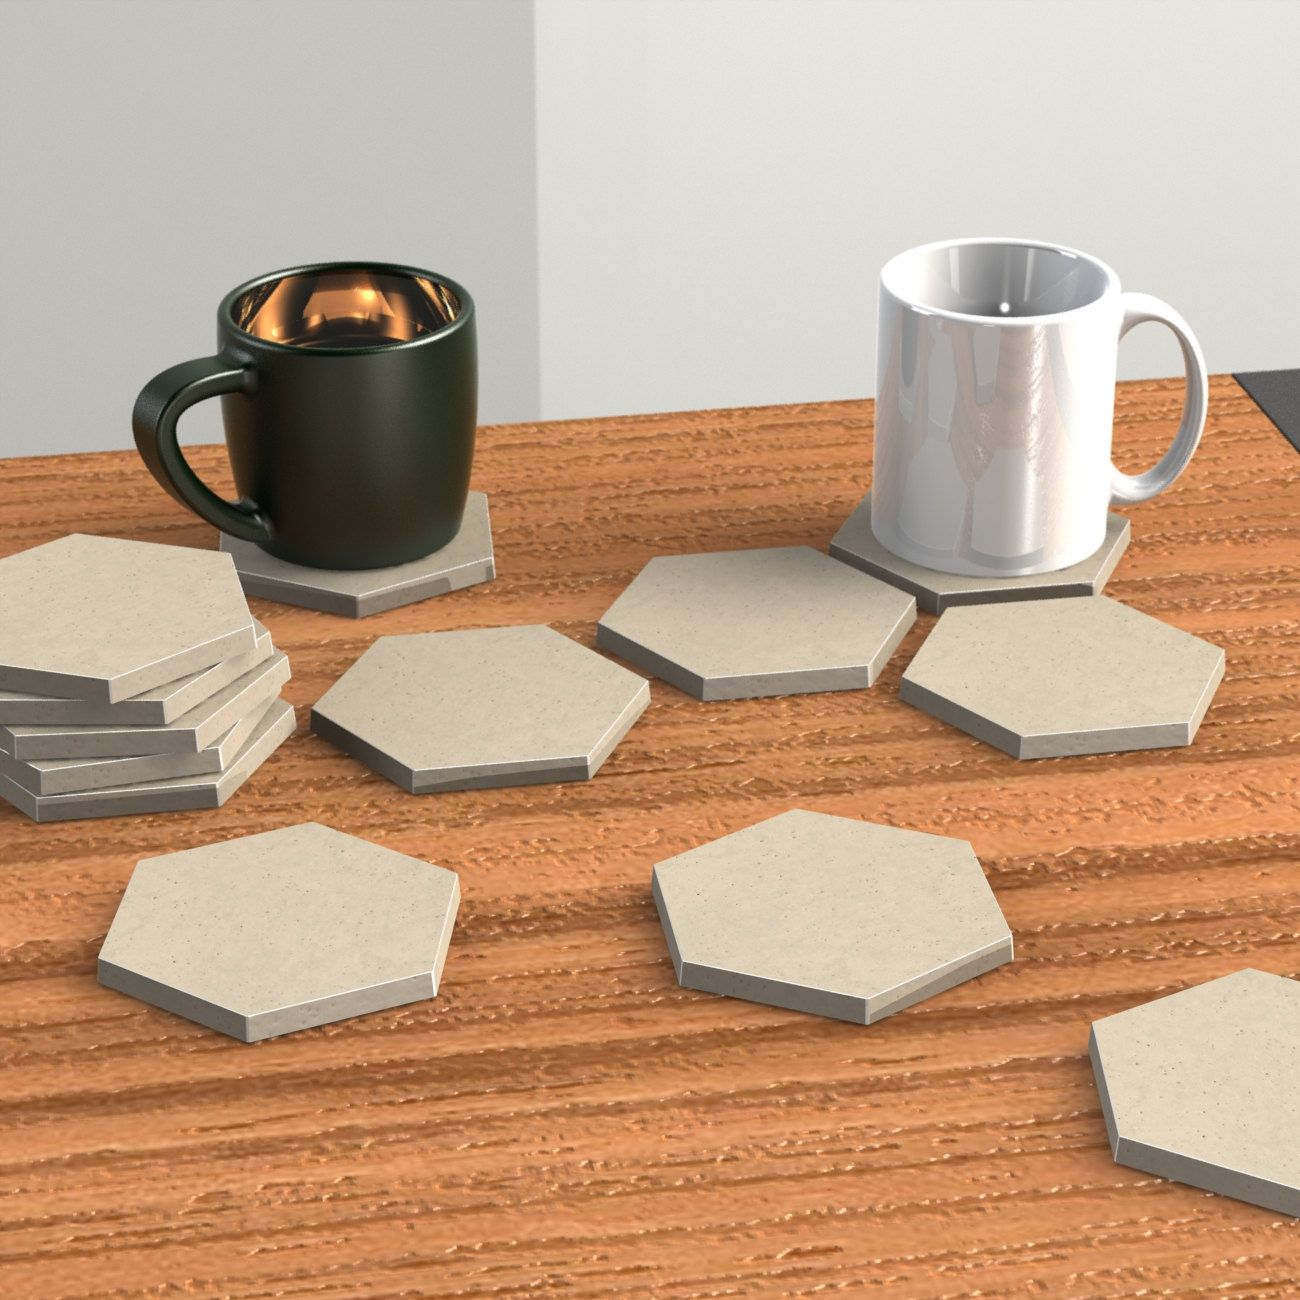 Hexagon coaster mold concrete mold geometric mold for How to make concrete coasters